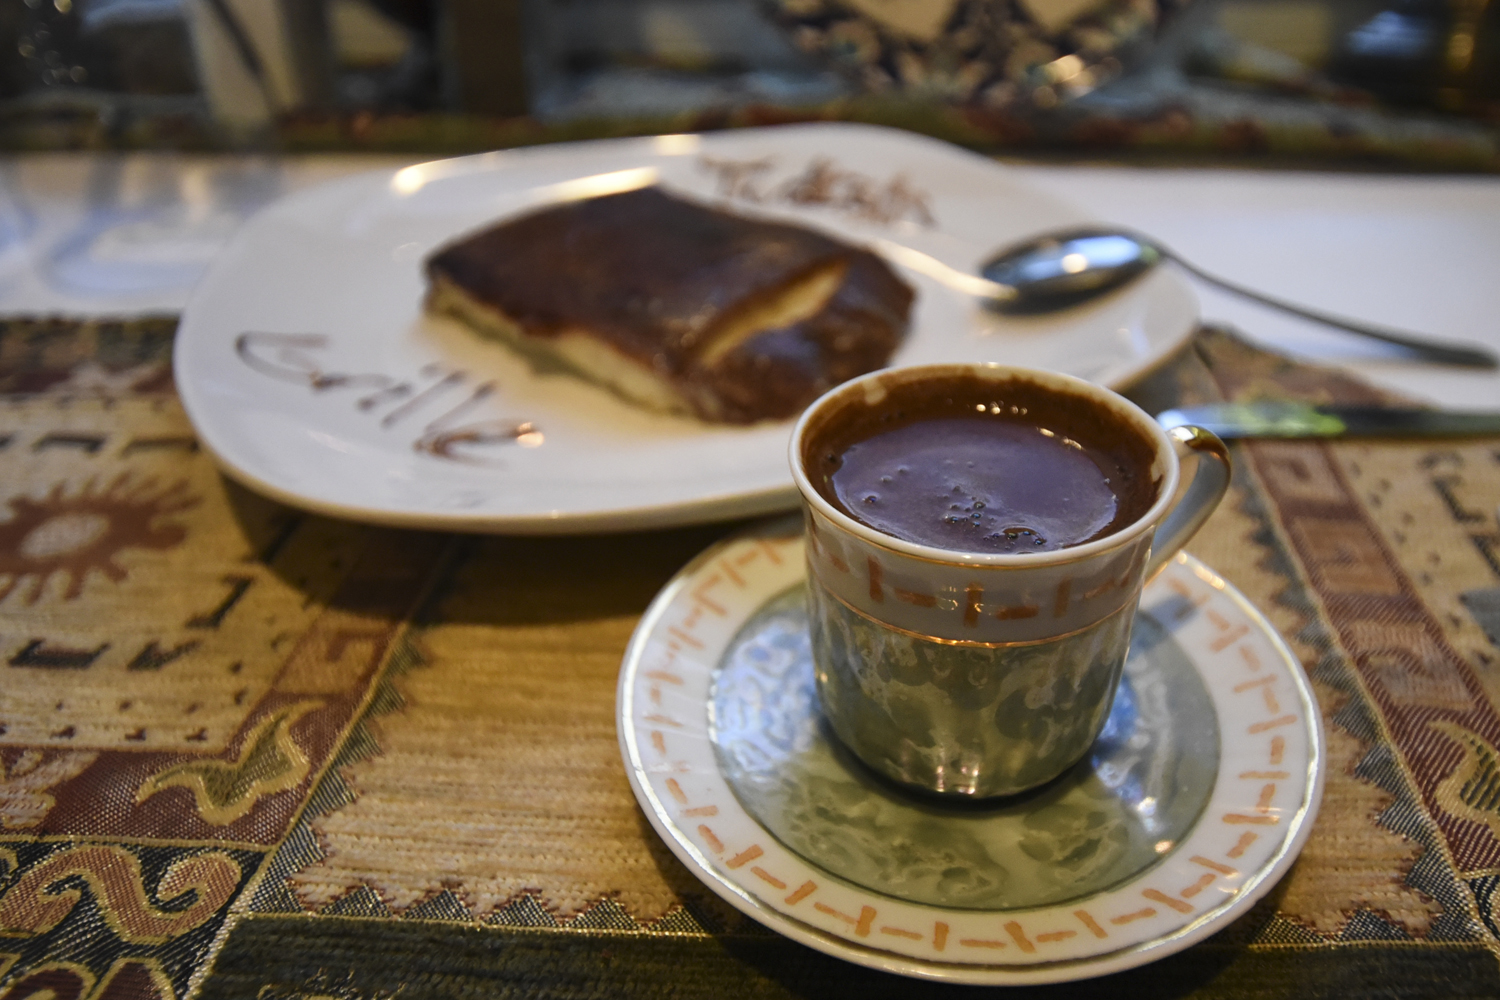 North Oakland's Turkish Grille serves Turkish coffee with kazandibi — baked milk pudding with a caramelized top.